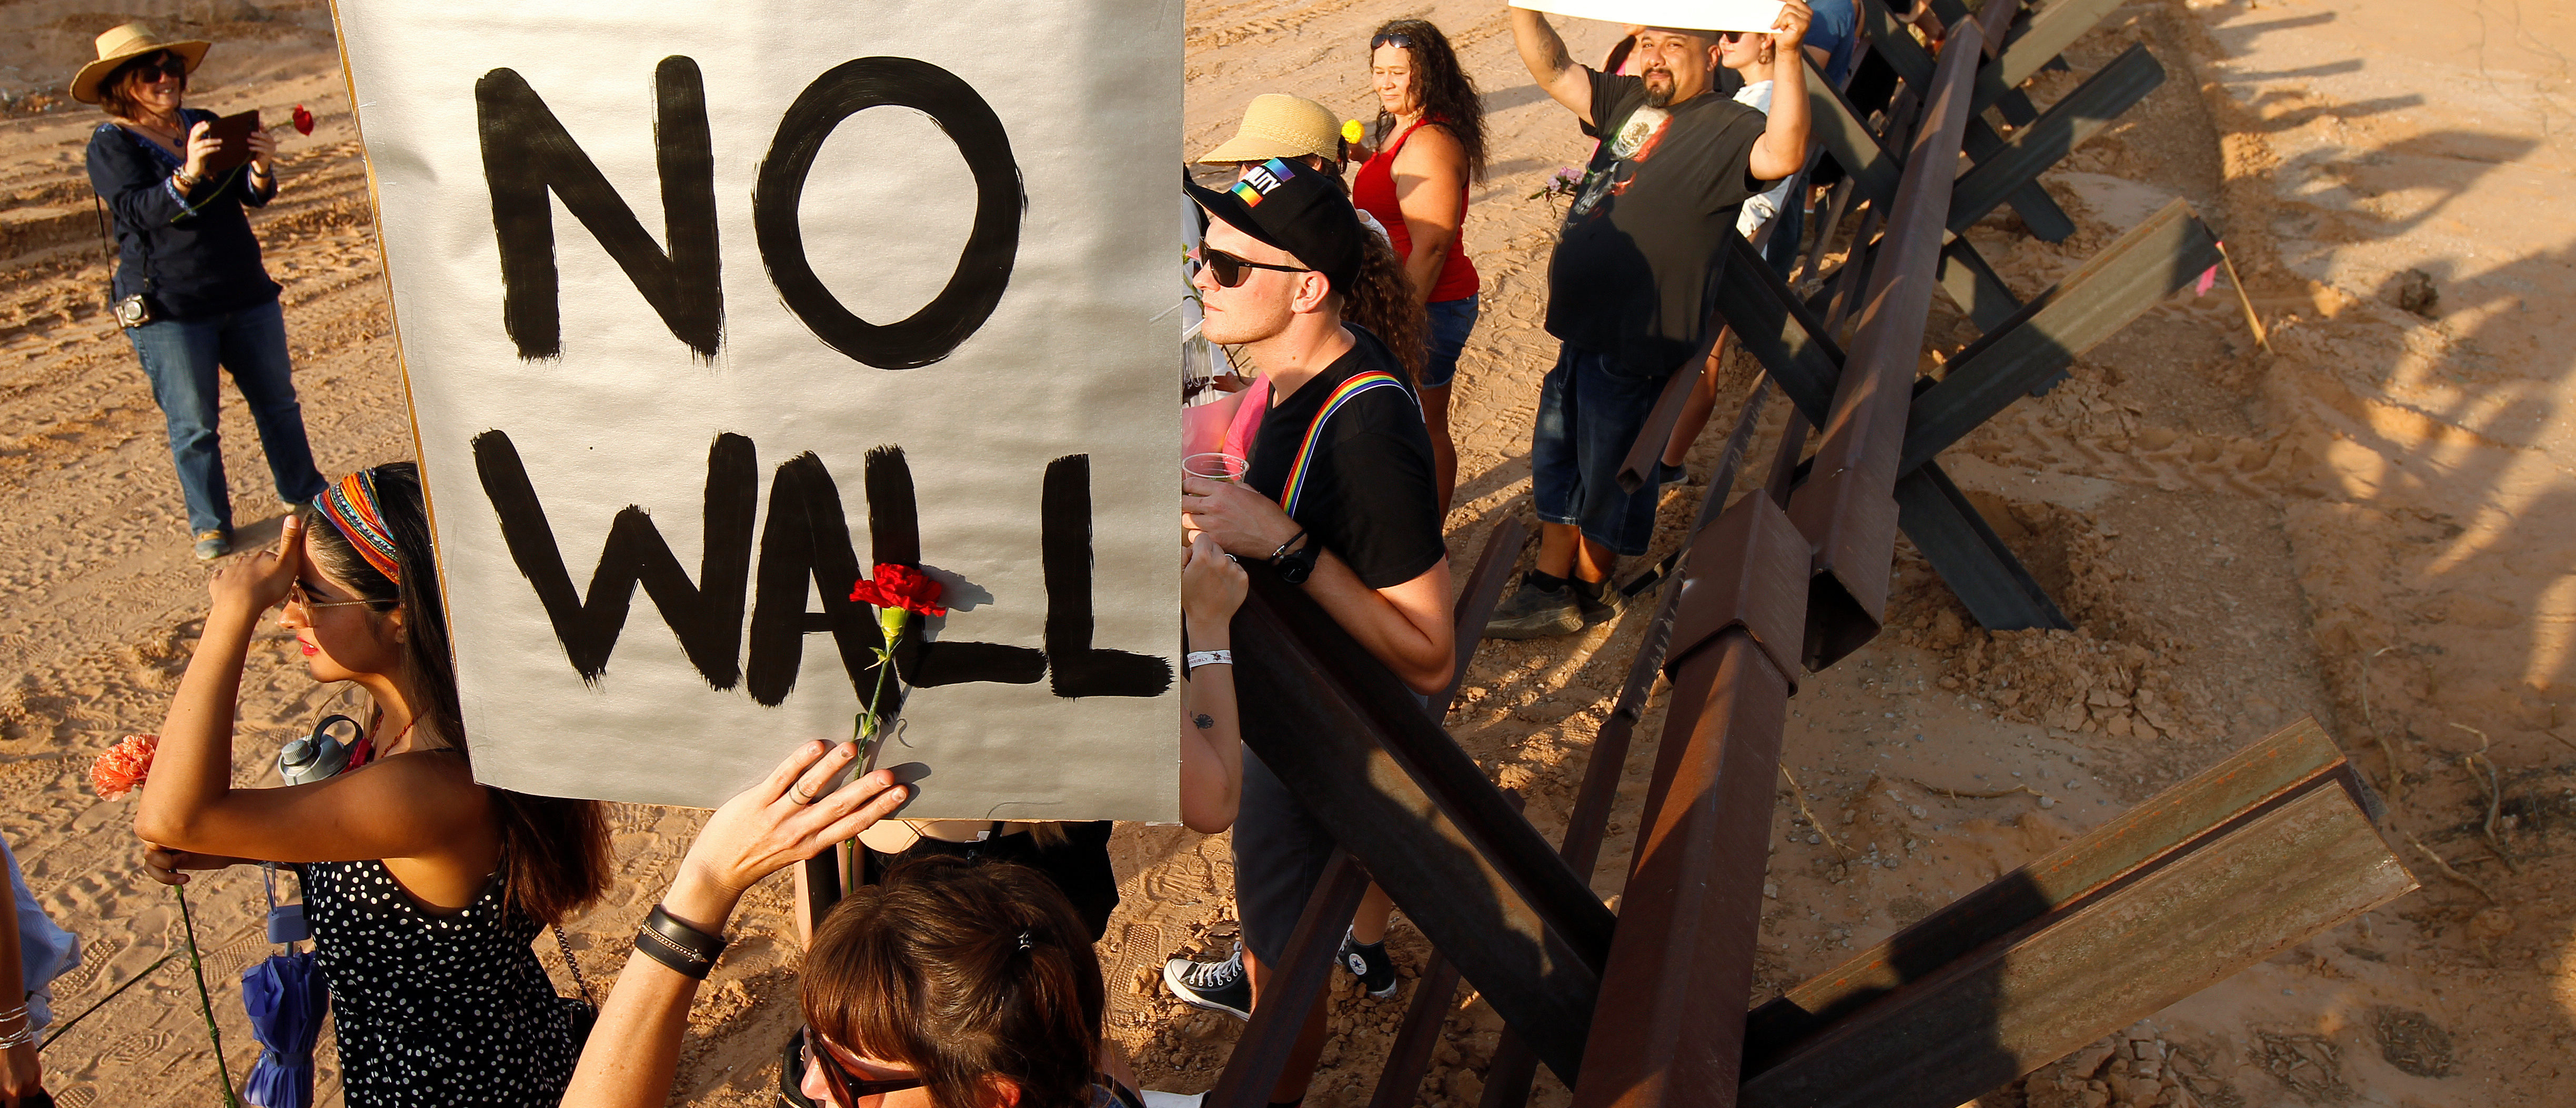 Demonstrators hold up placards during a protest against the border wall and the militarization of the border at a new section of the bollard wall in Santa Teresa, New Mexico, as seen from the Mexican side of the border in San Jeronimo, on the outskirts of Ciudad Juarez, Mexico June 2, 2018. REUTERS/Jose Luis Gonzalez - RC1573585AF0